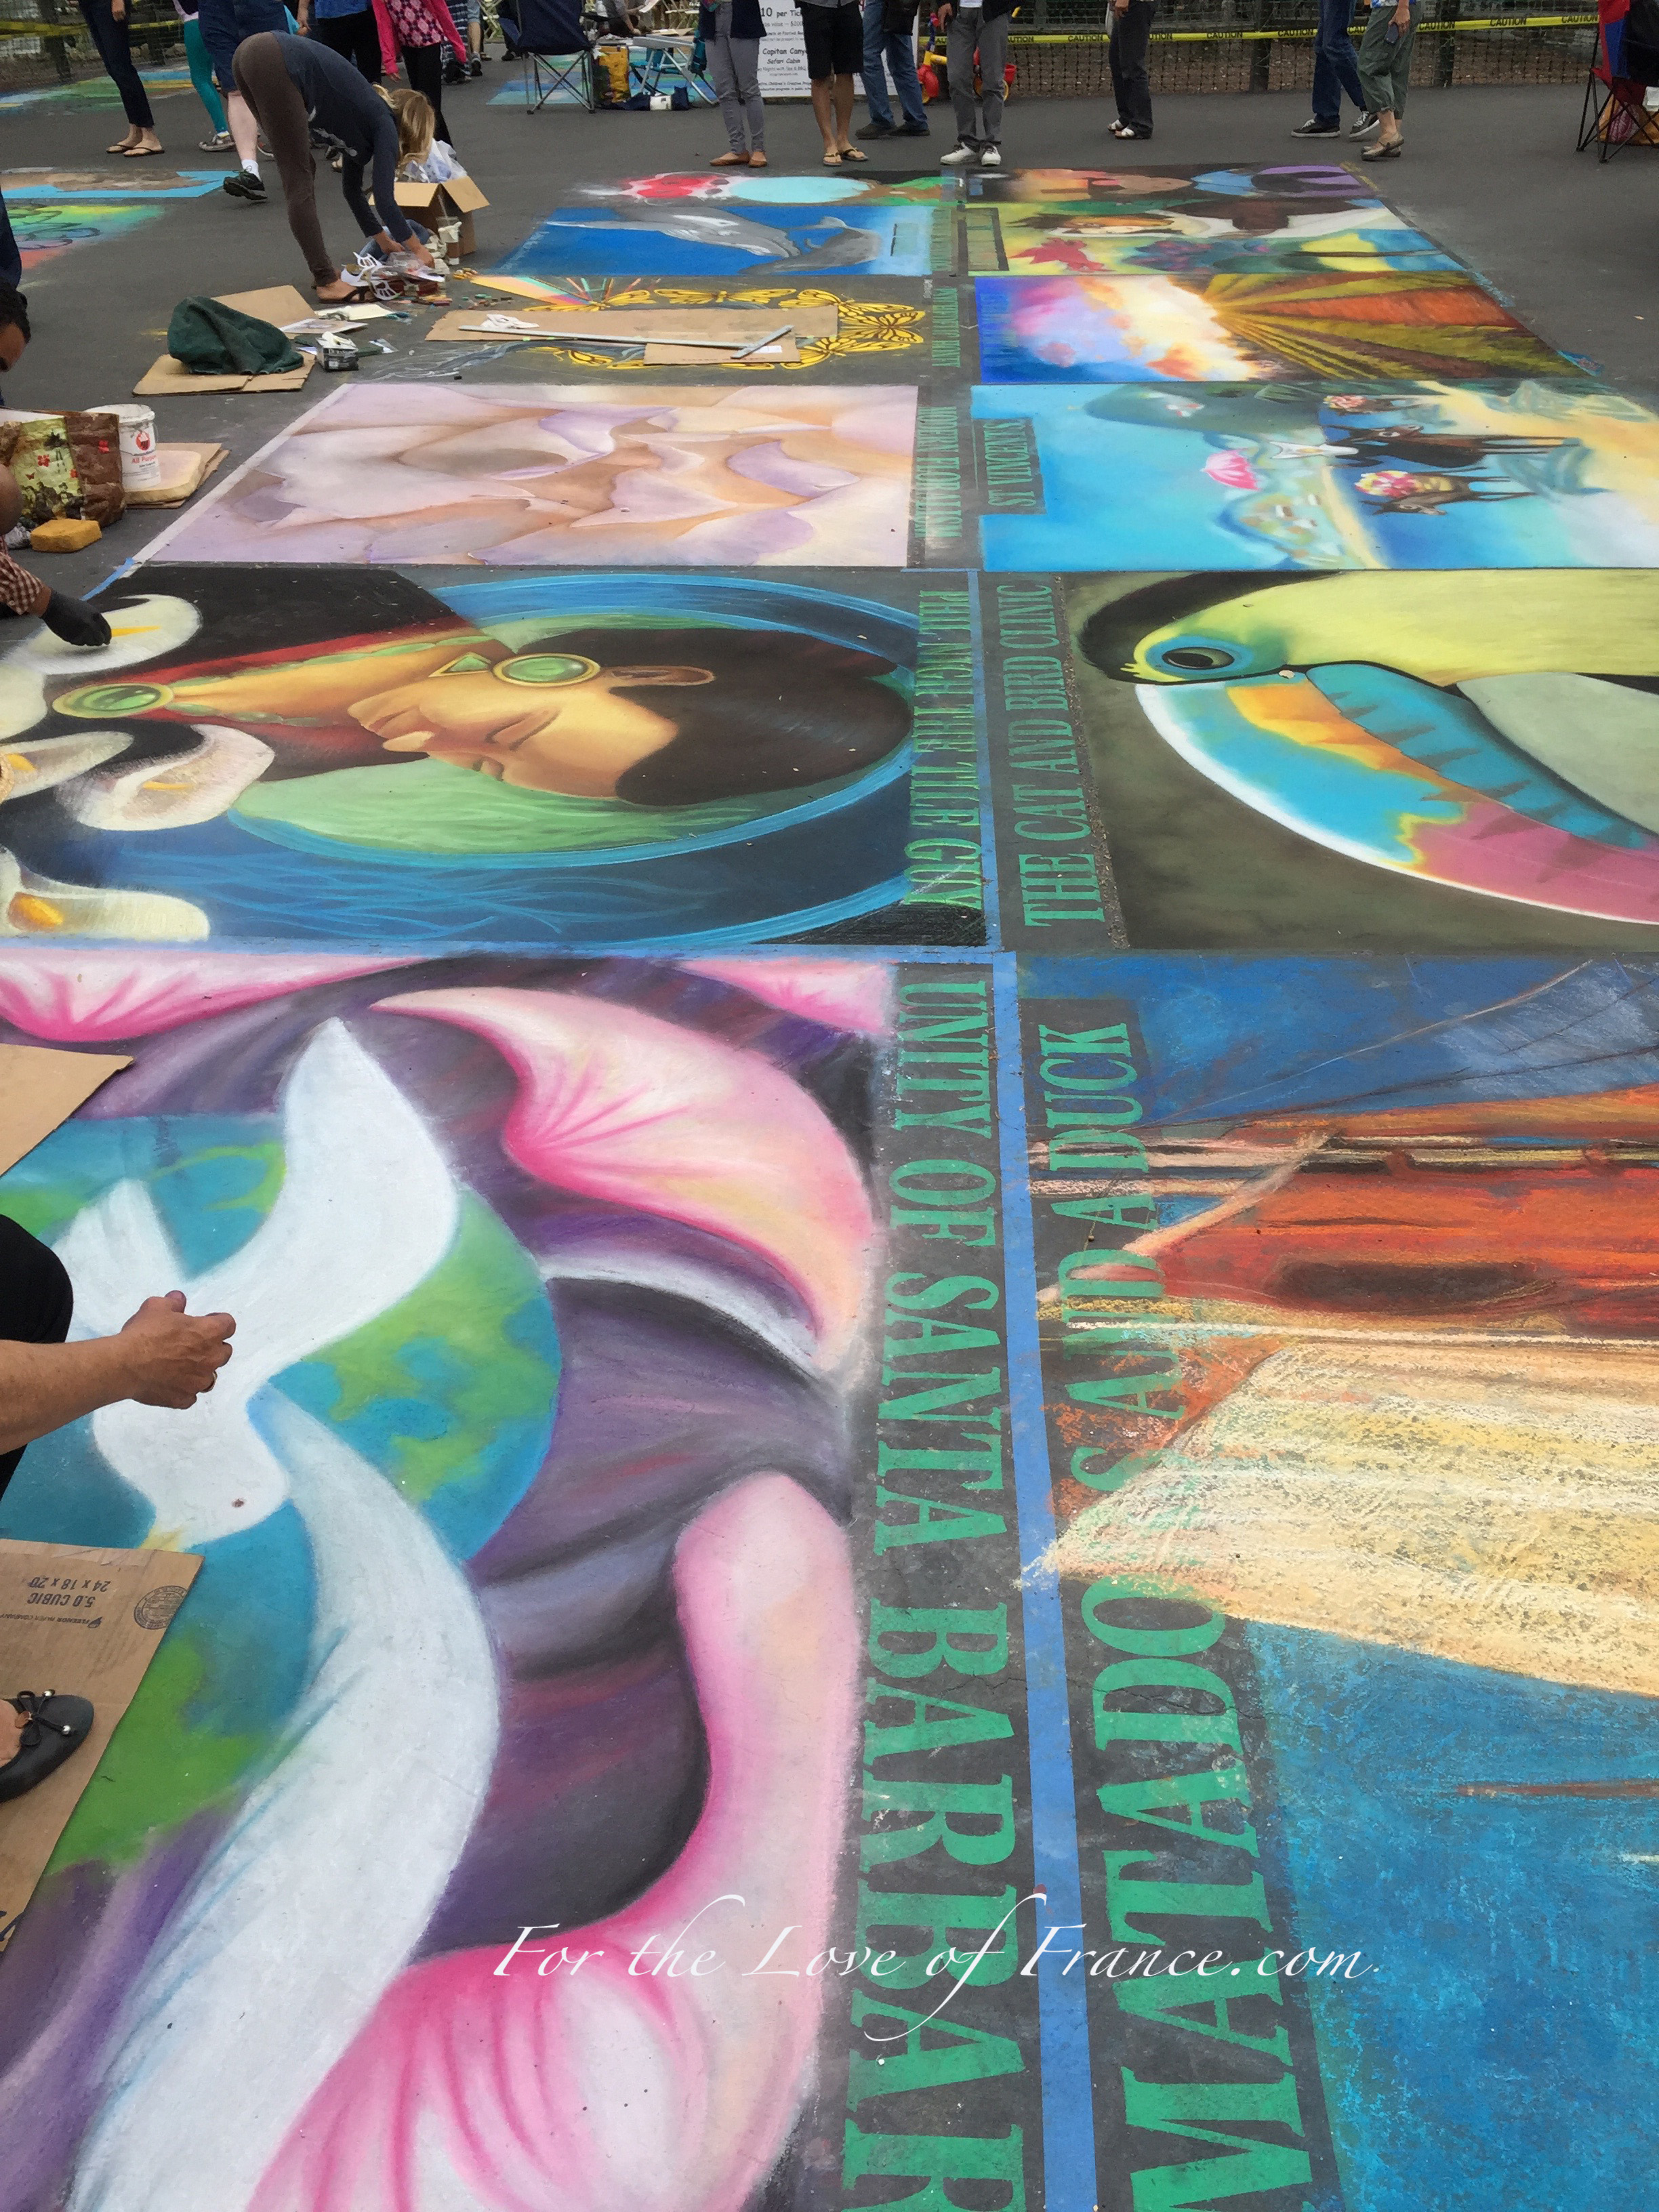 An overview of 'Il Madonnari' 2015